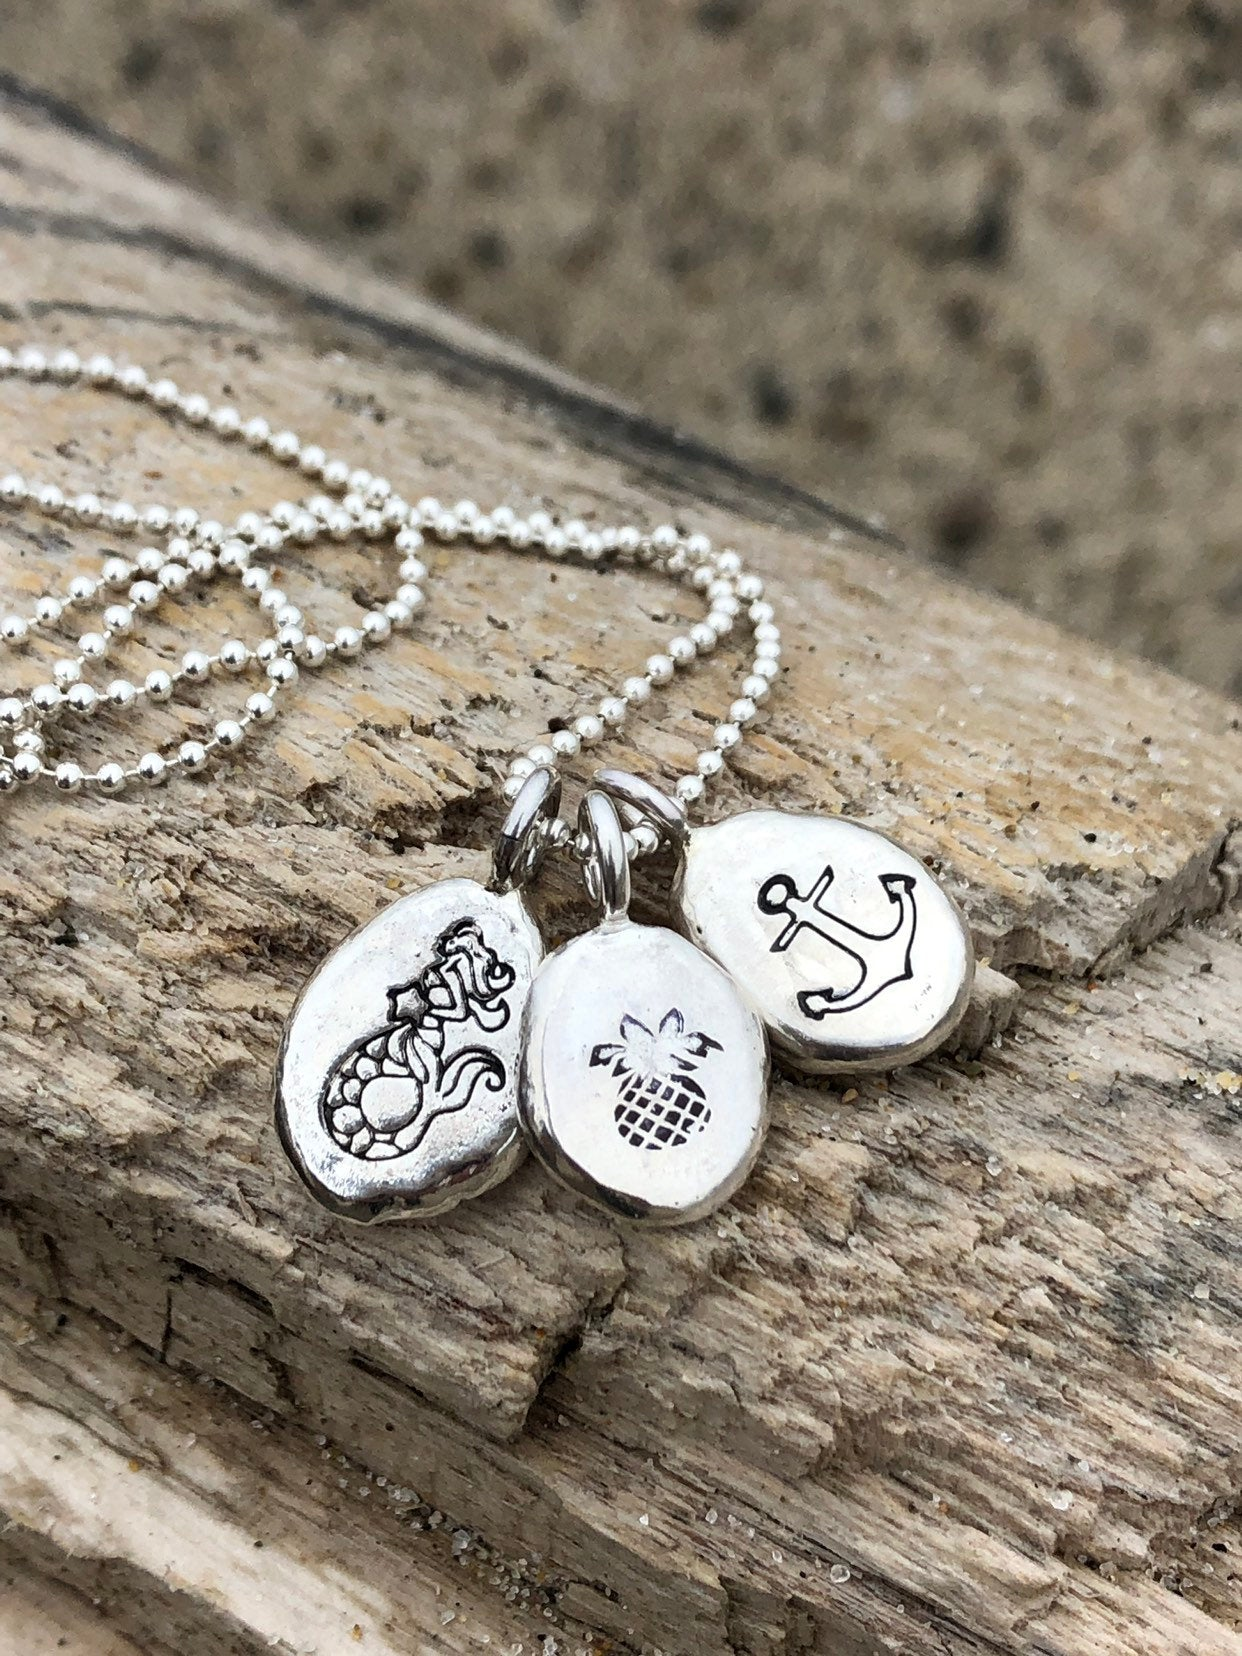 Recycled Sterling Silver Hand Stamped Charm Necklace